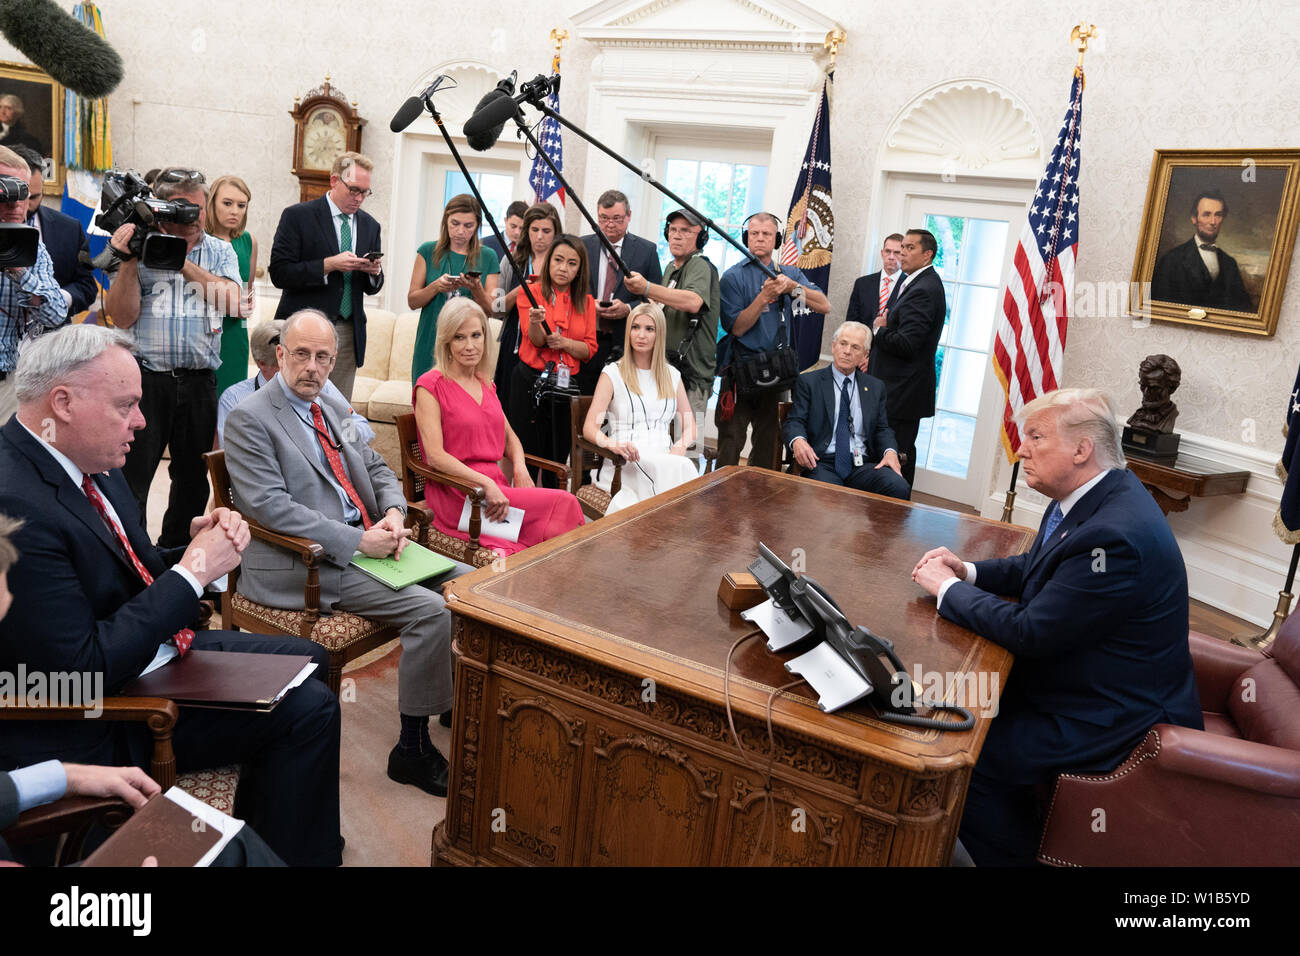 Washington, United States Of America. 25th June, 2019. President Donald J. Trump participates in a fentanyl epidemic update meeting Tuesday, June 25, 2019, in the Oval Office of the White House People: President Donald Trump Credit: Storms Media Group/Alamy Live News Stock Photo